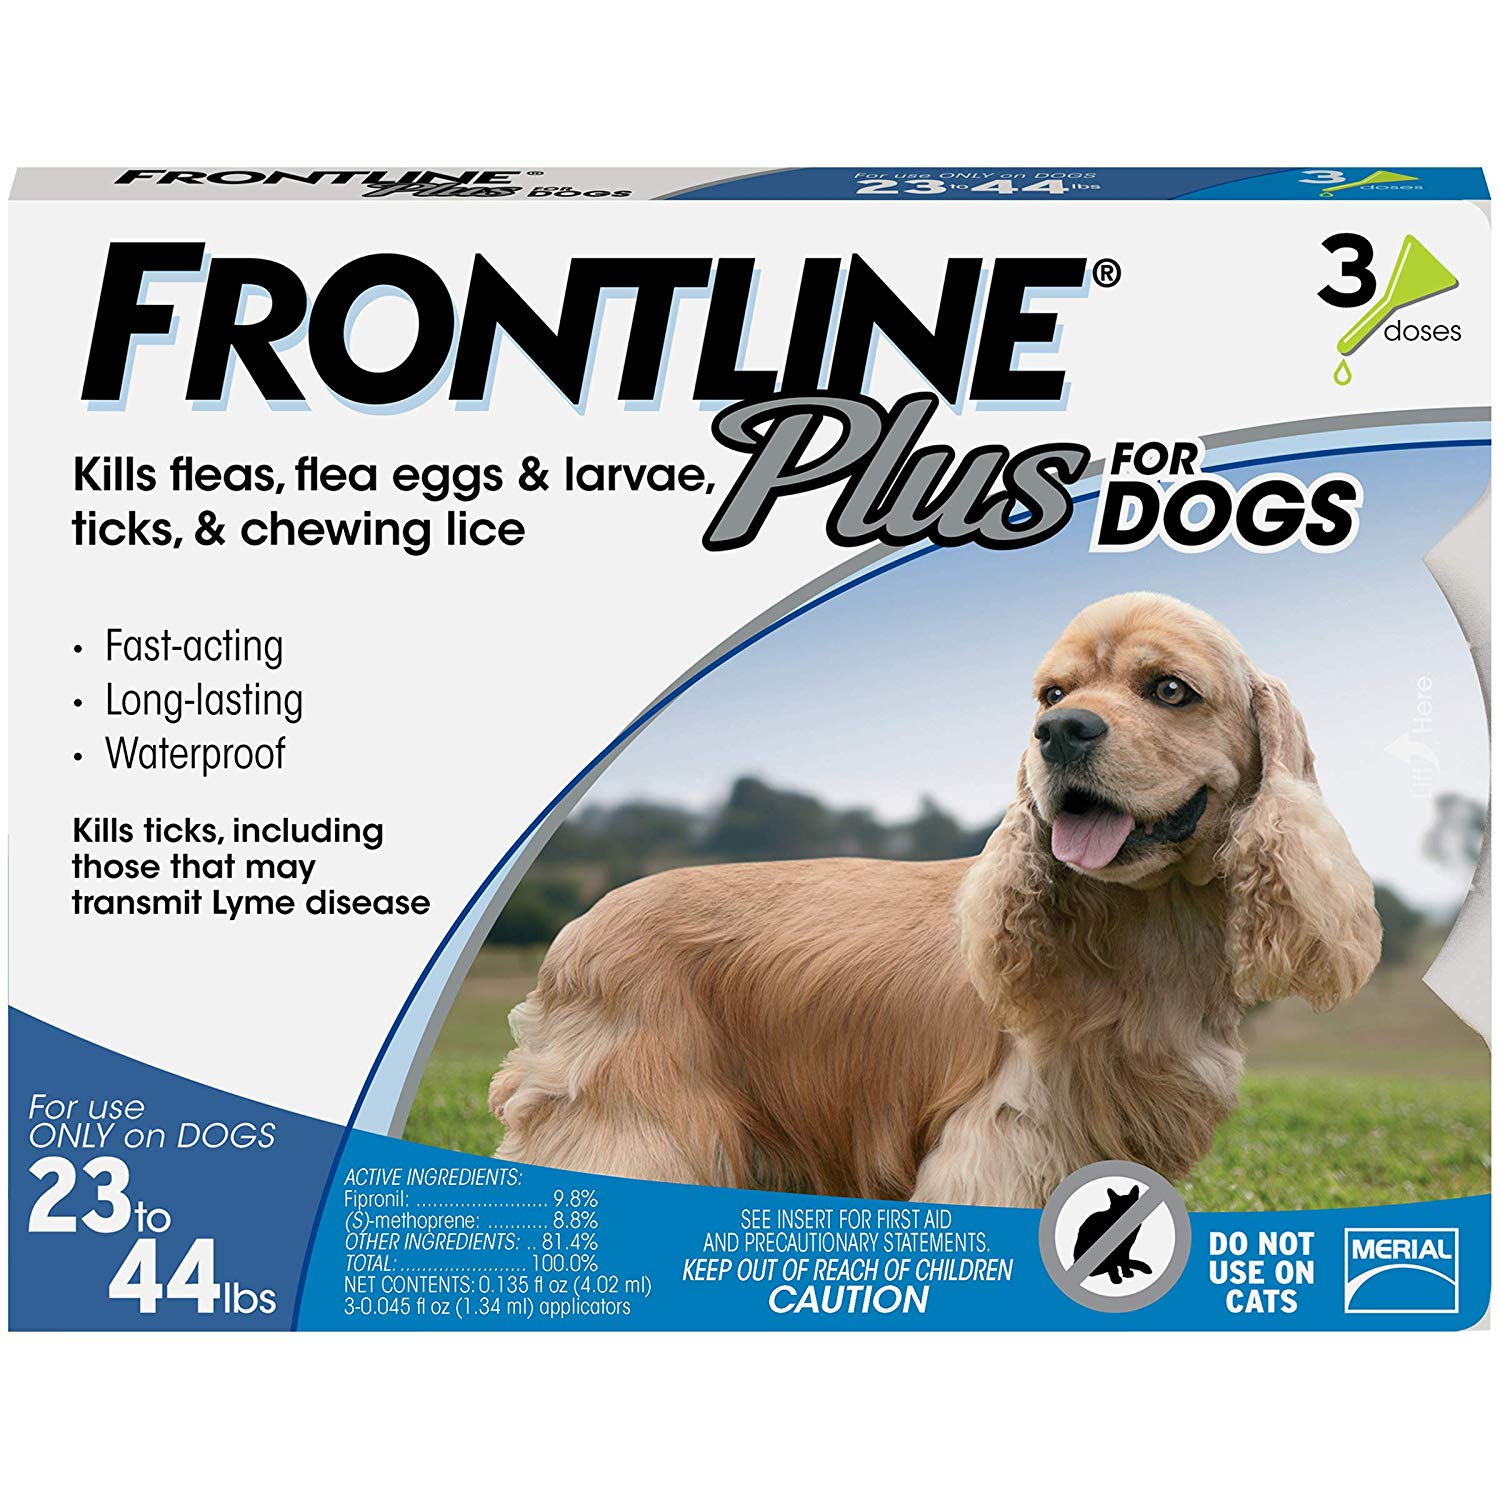 Flea & Tick Prevention for Dogs & Cats: Frontline Plus for Medium Dogs